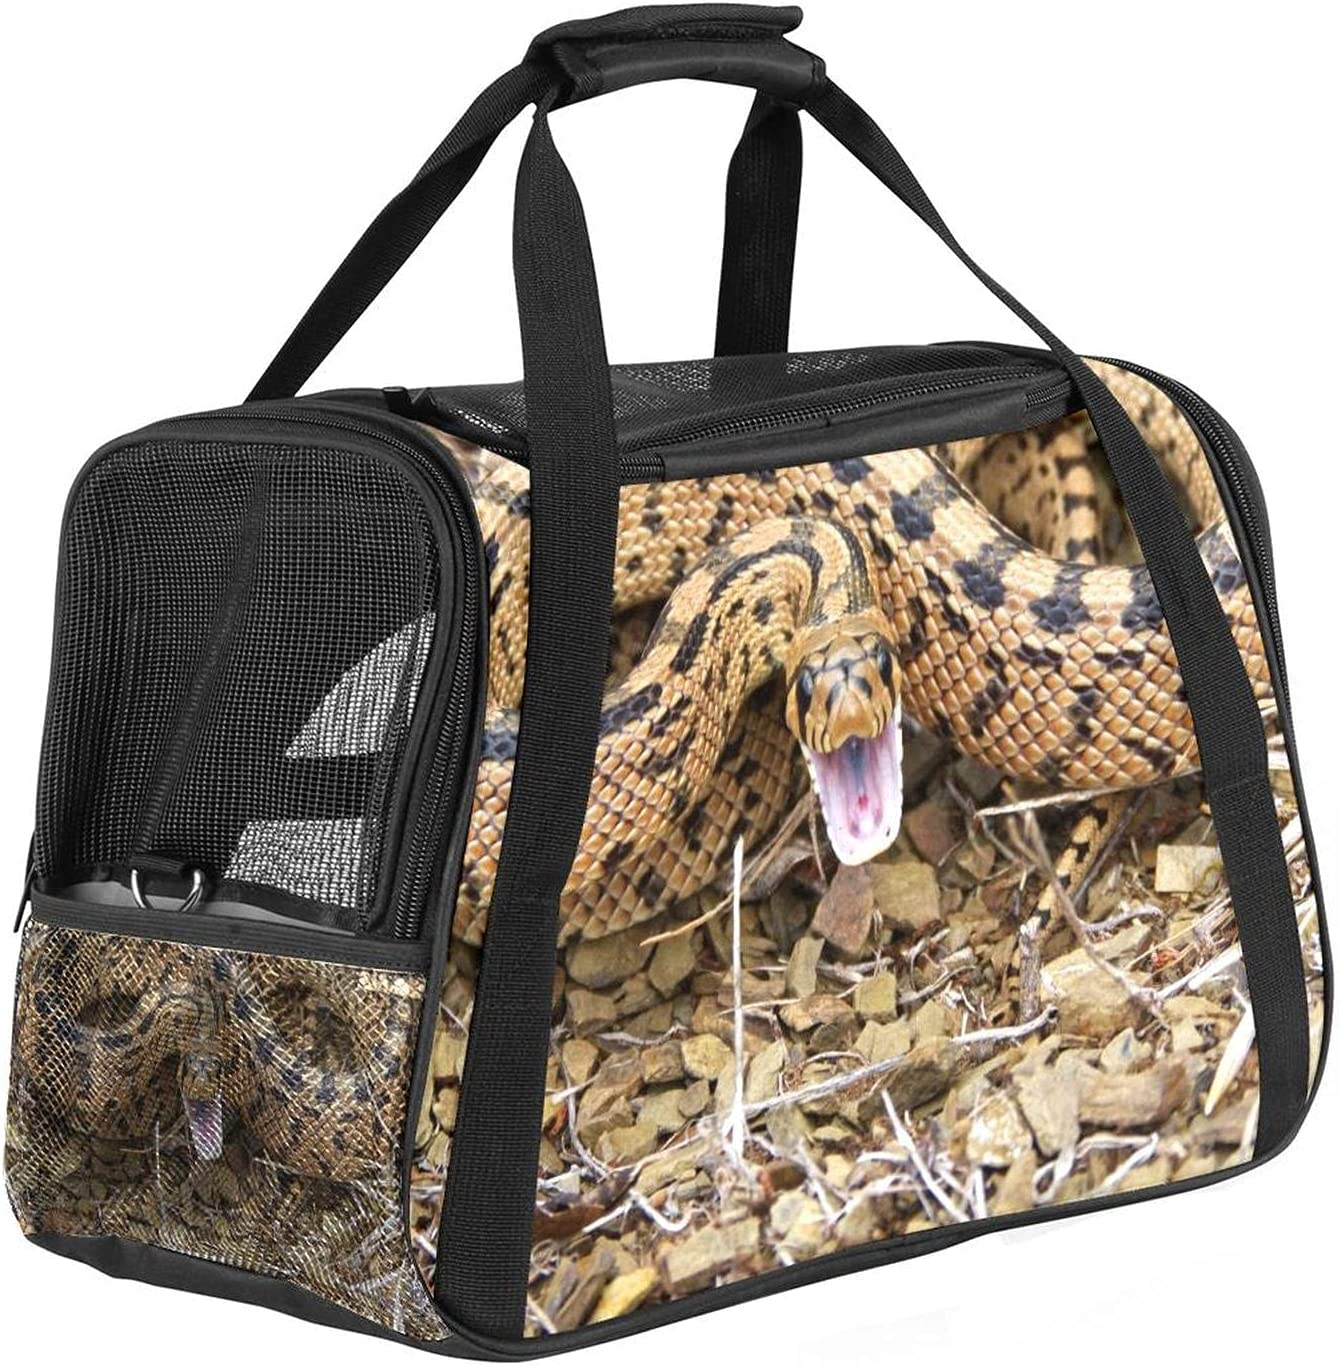 Super intense SALE Detroit Mall Pet Carriers Soft Sided Collapsible for Carrier Travel Small